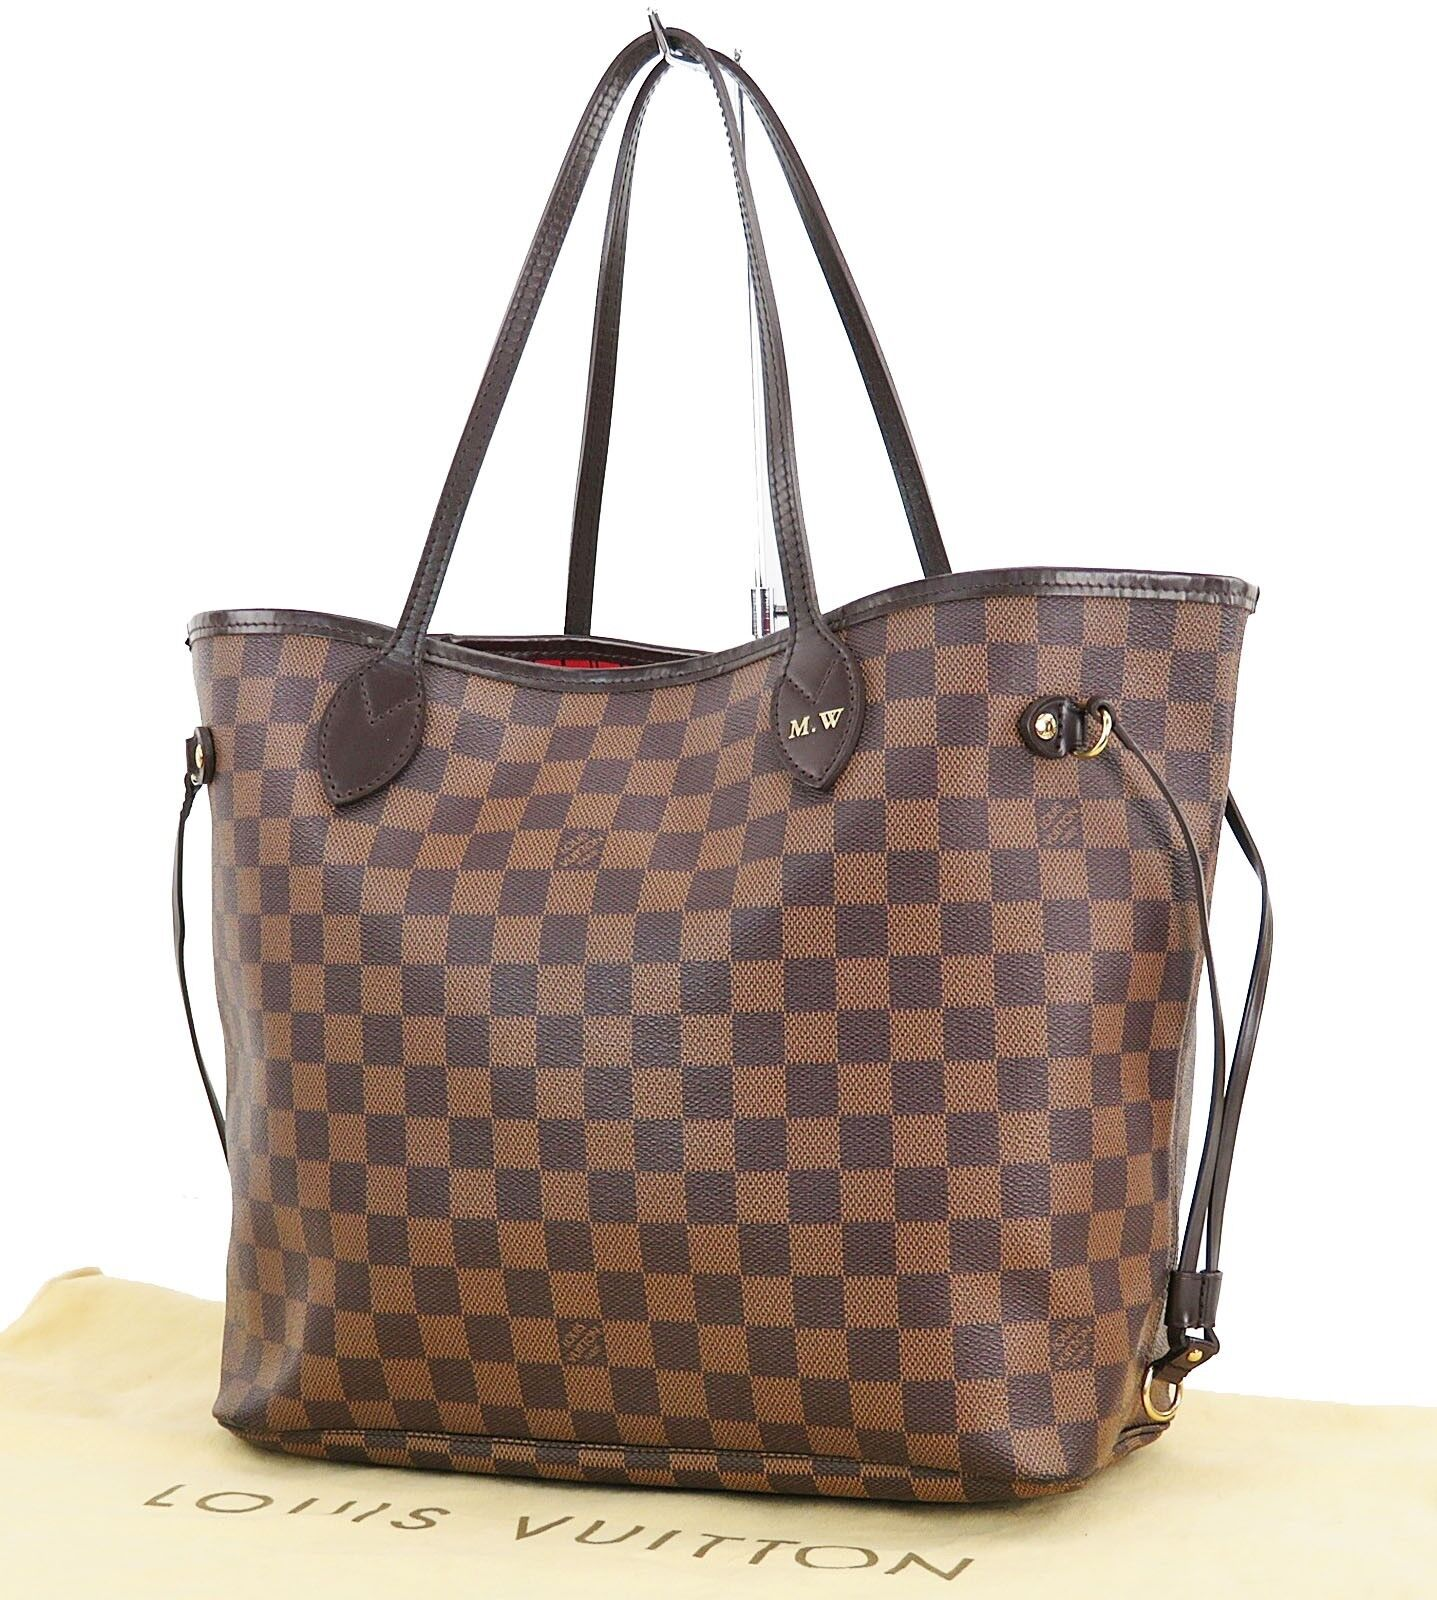 Authentic LOUIS VUITTON Neverfull MM Damier Ebene Tote Bag Purse #28456